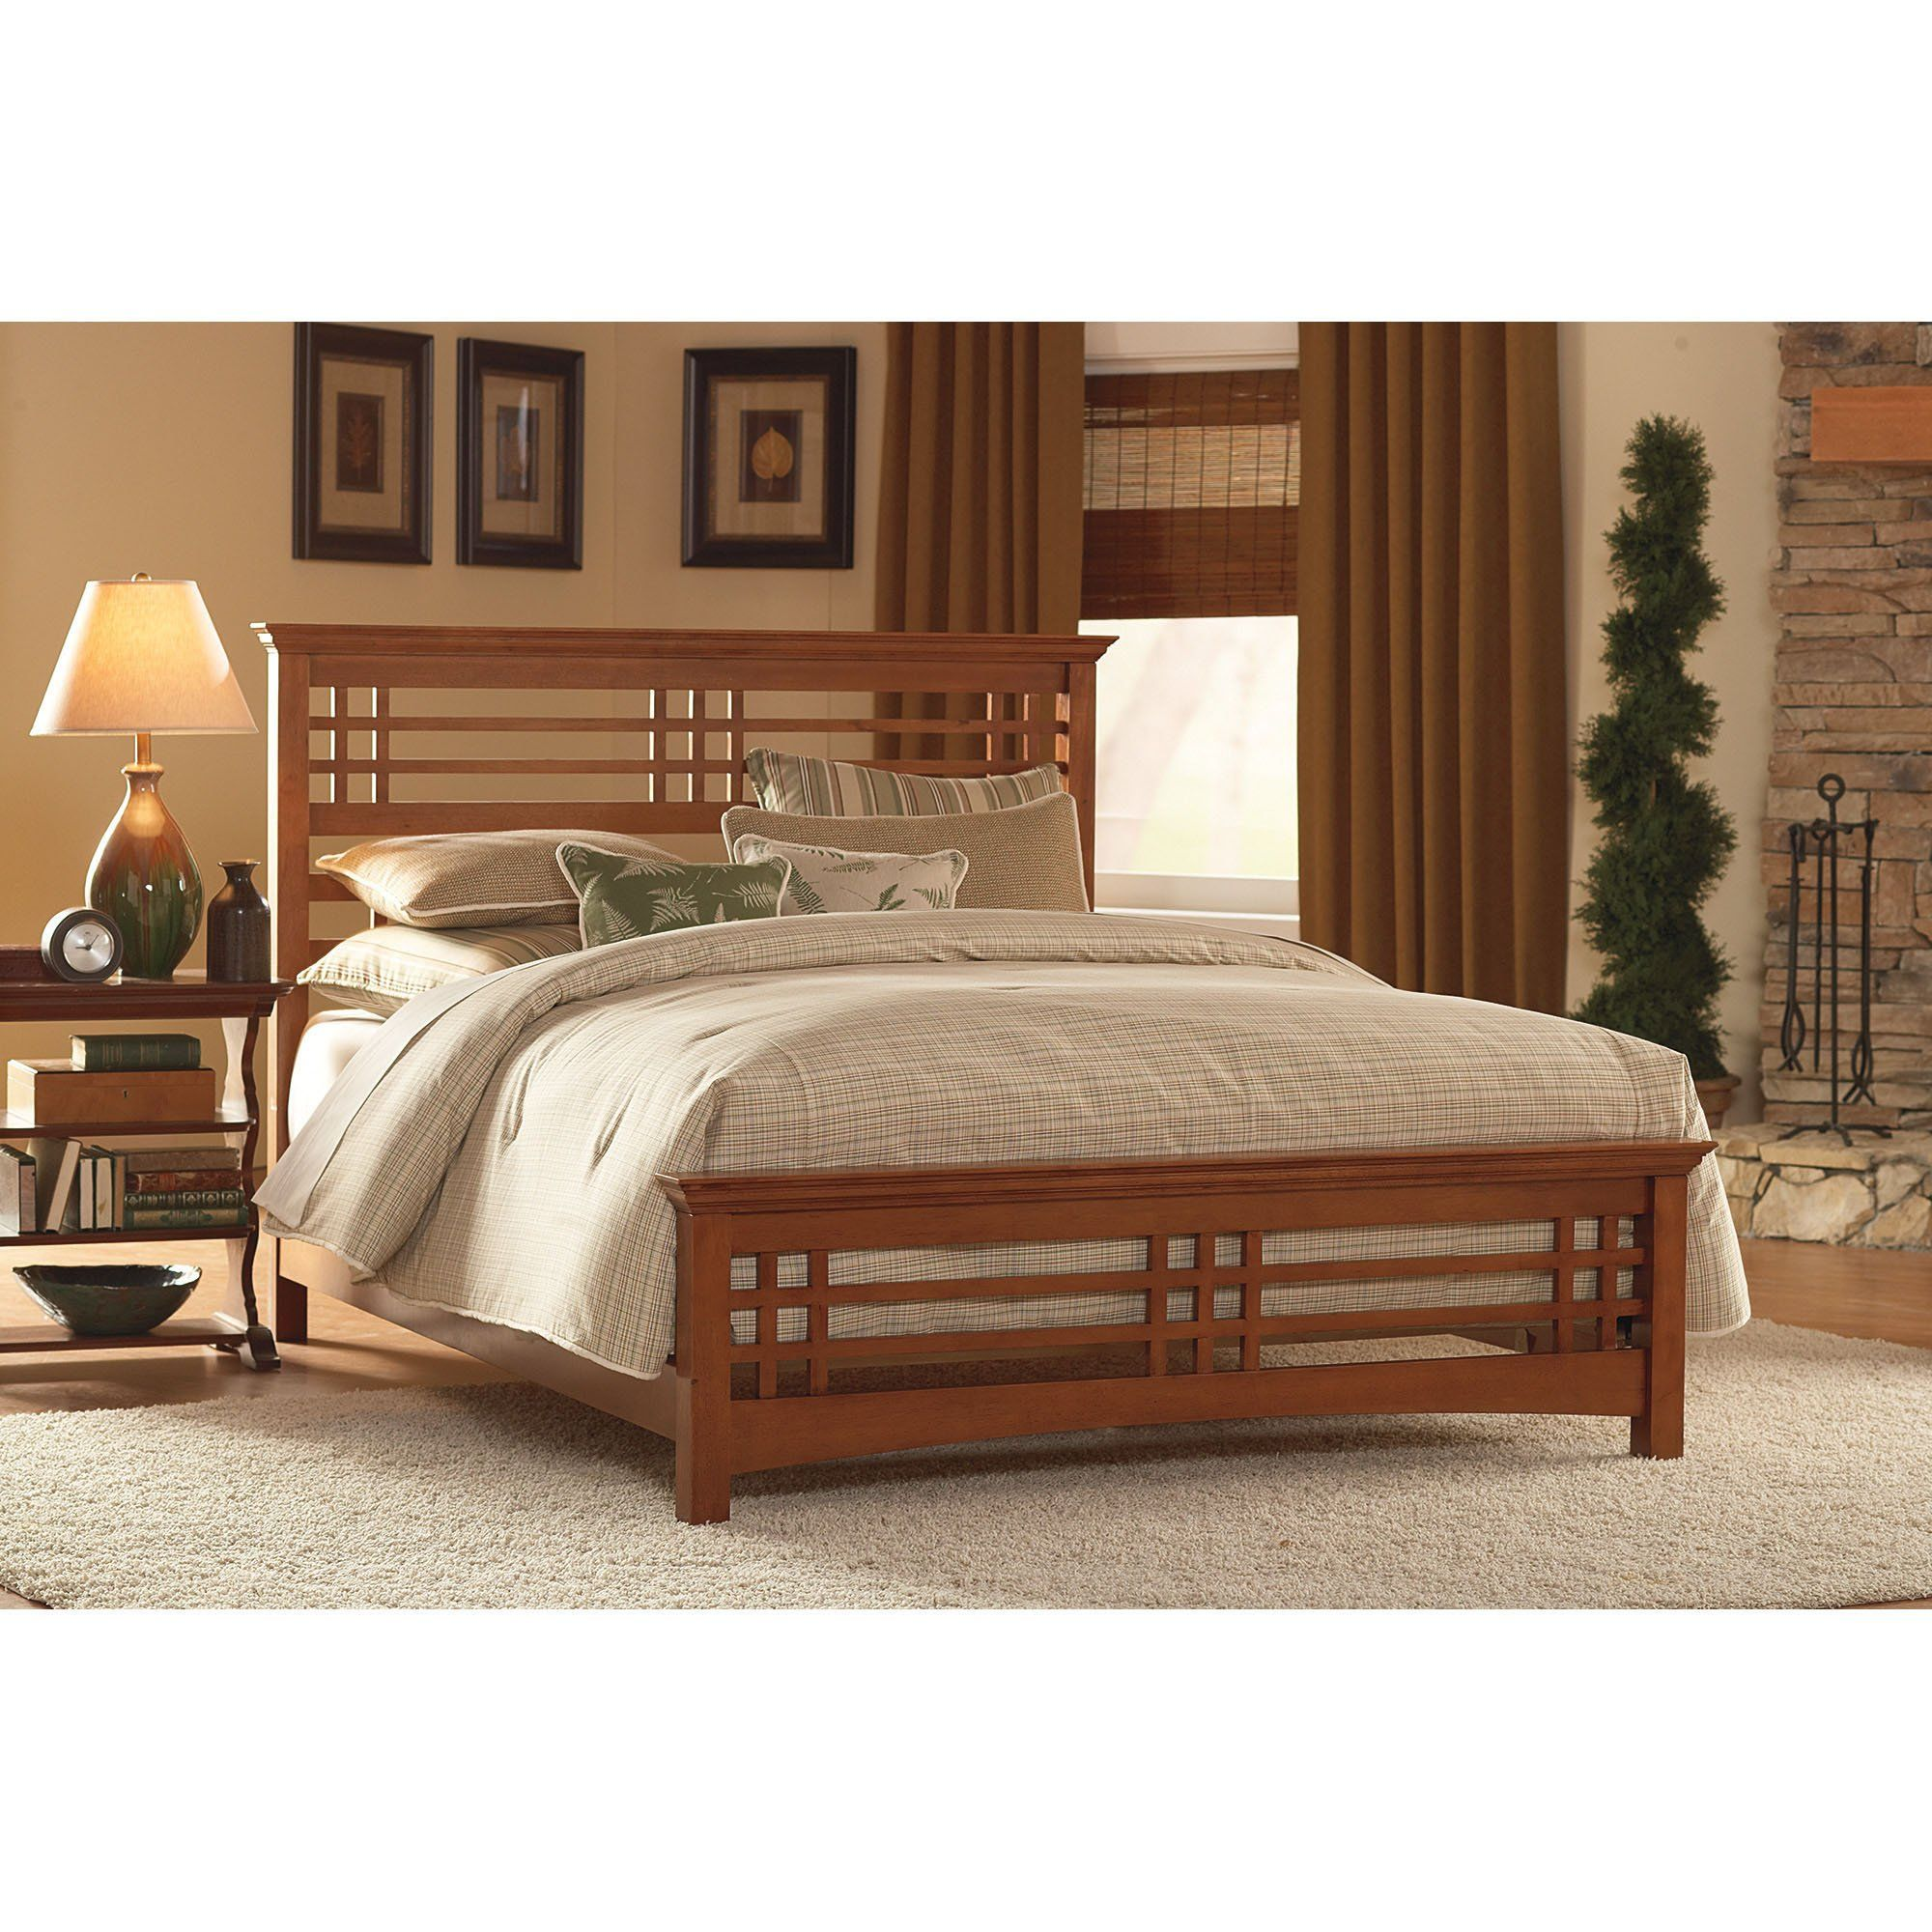 Avery Complete Bed with Wood Frame and Mission Style